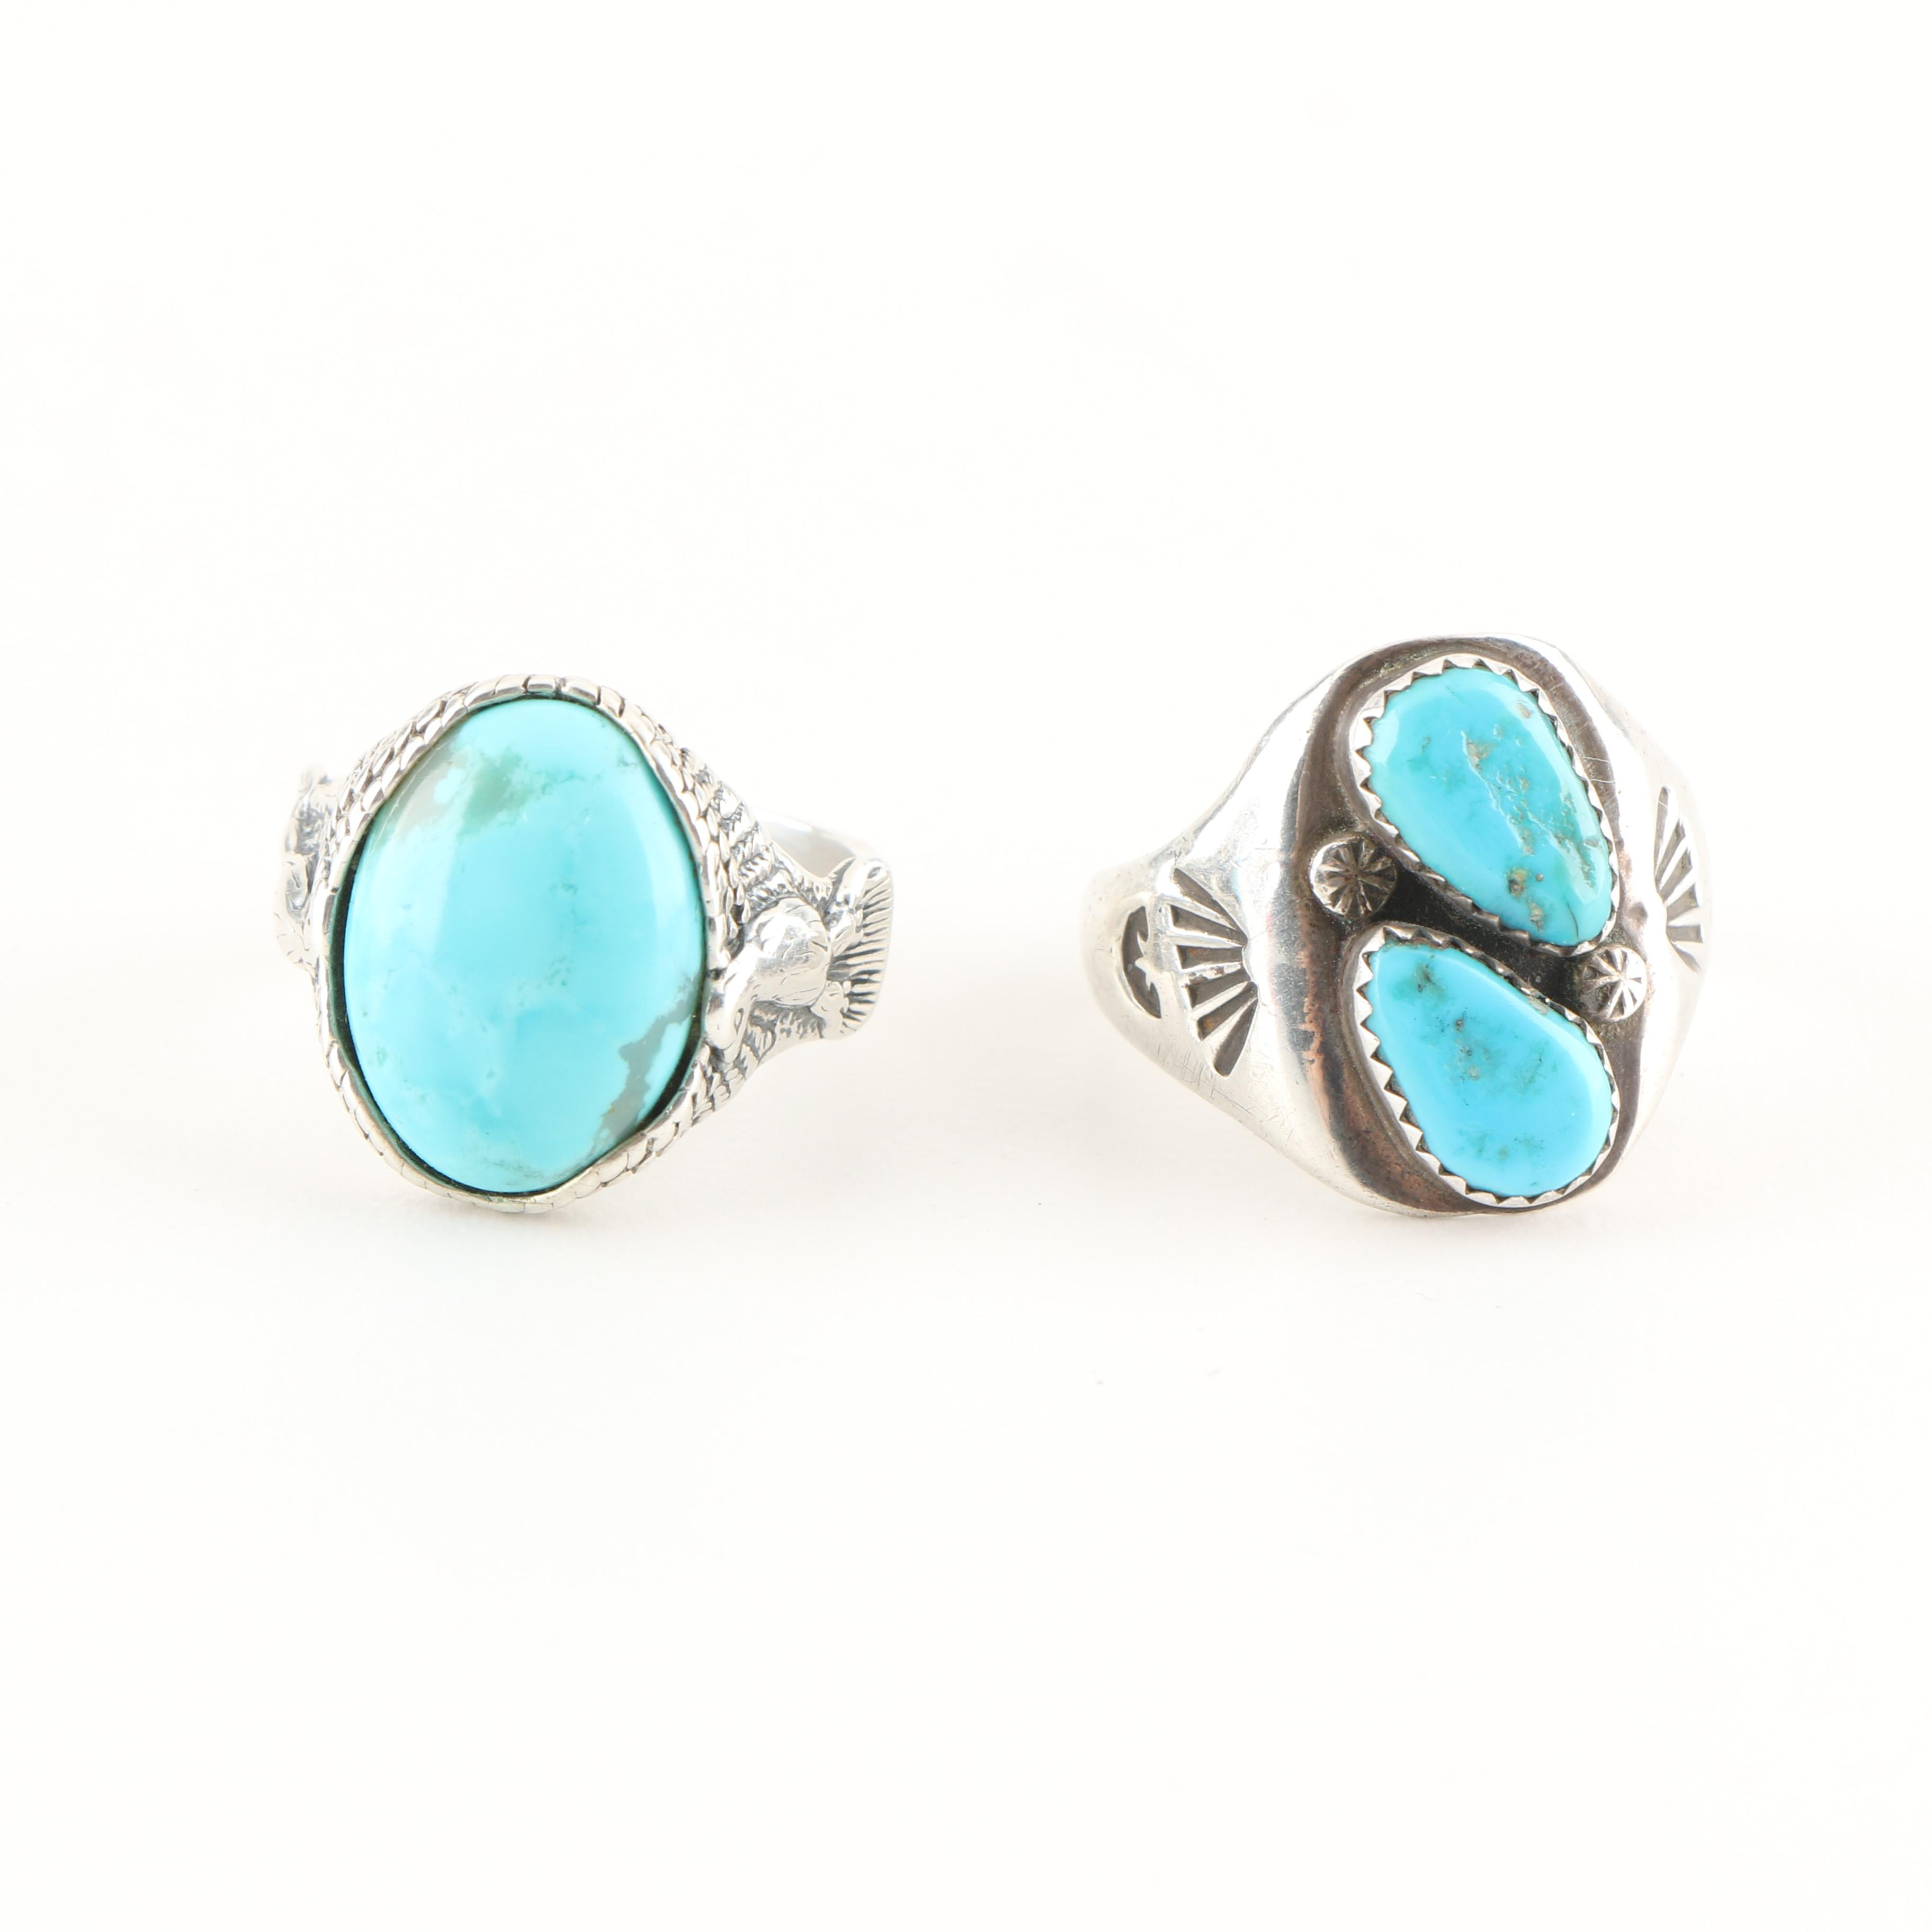 Sterling Silver Southwestern Style Rings Including Carolyn Pollack